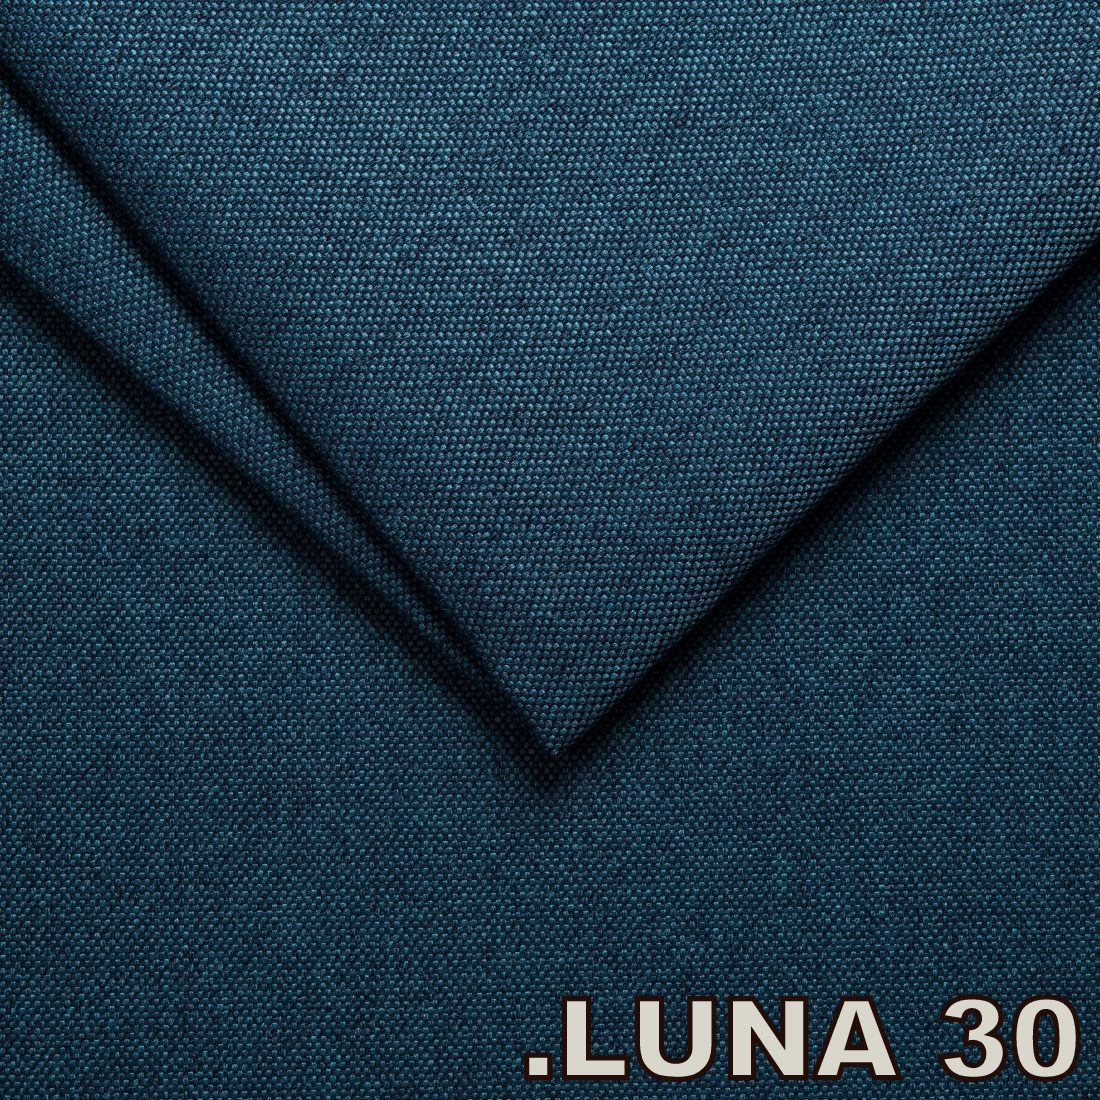 Luna 30 Blue (Tissu Tweed structure fine)